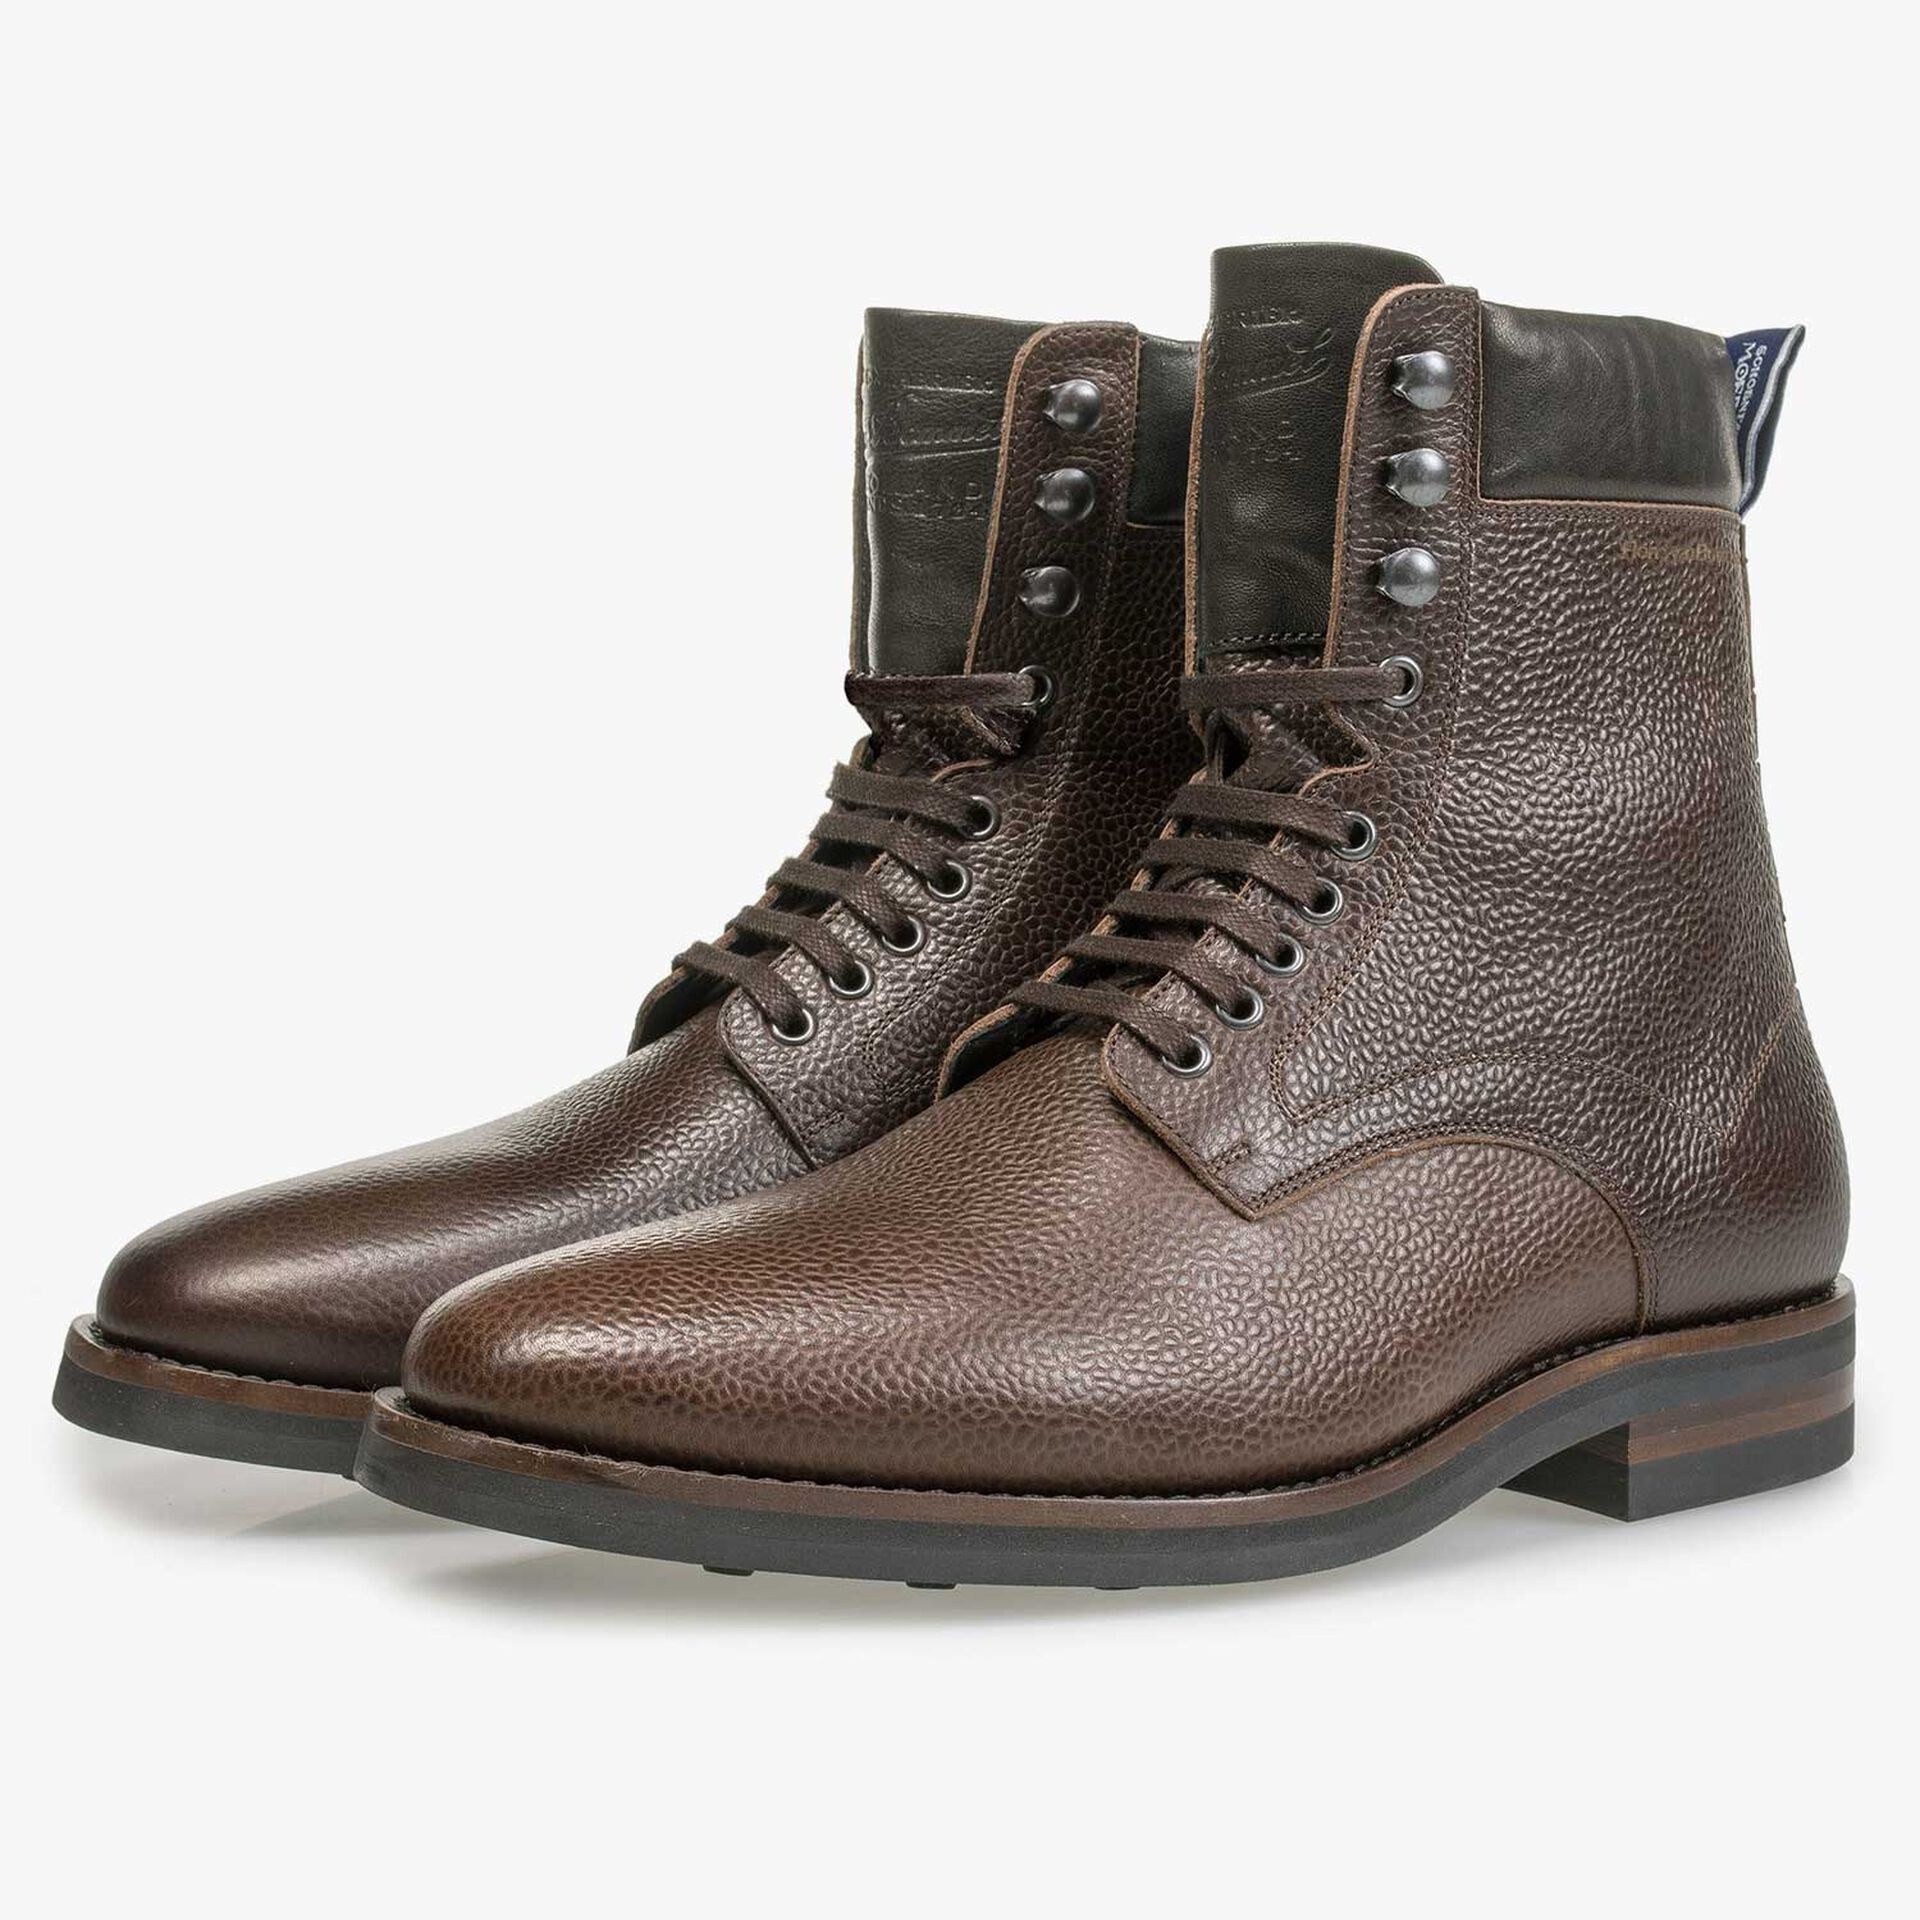 Dark brown calf's leather lace boot